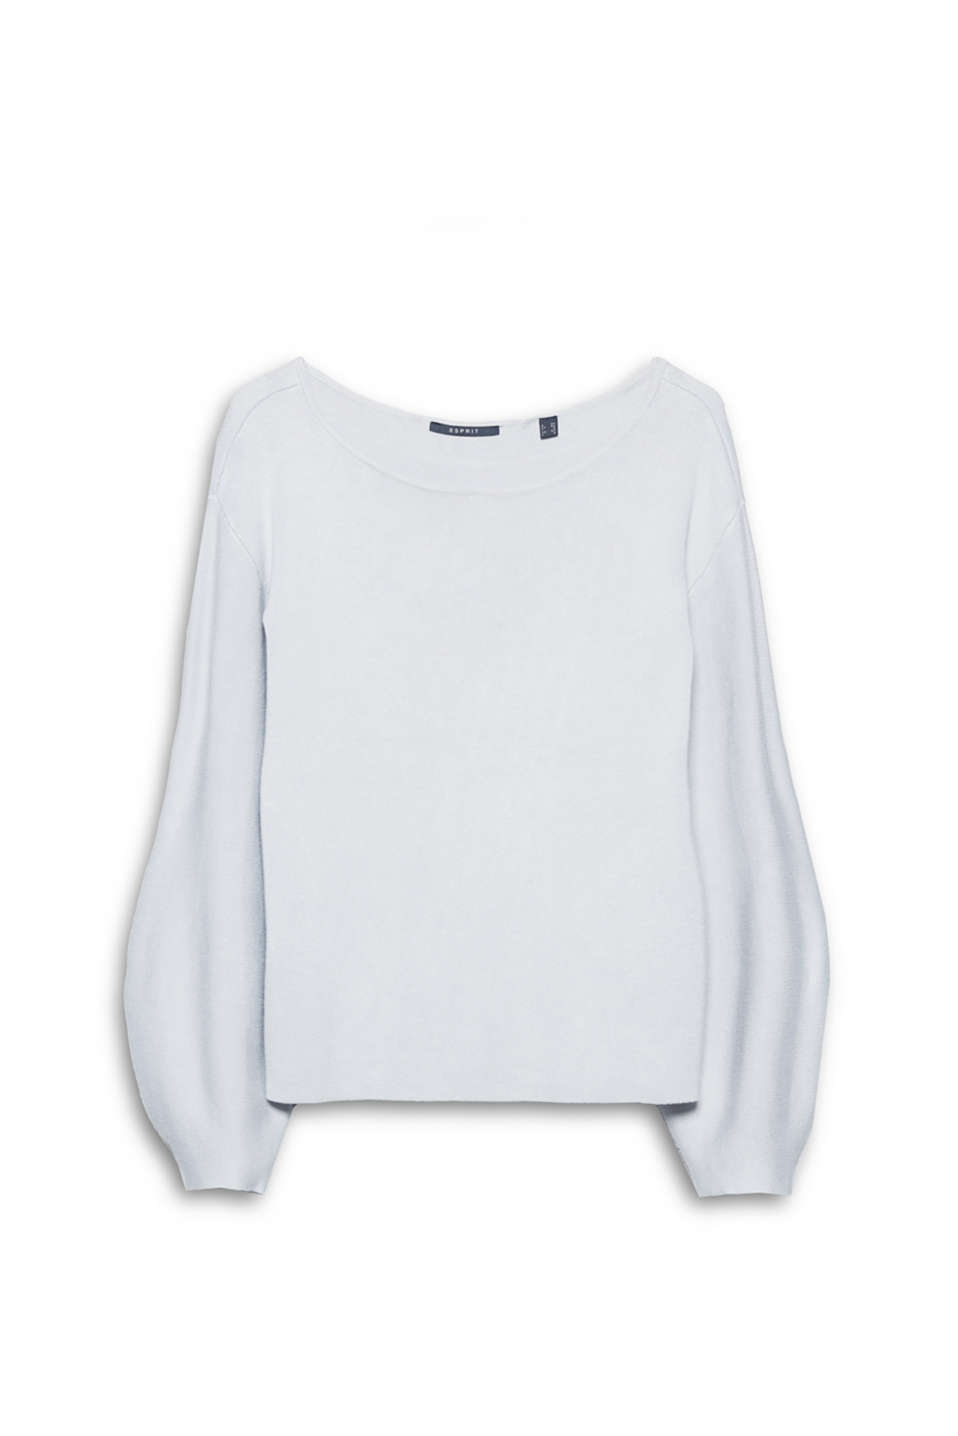 Great for creating outfits thanks to its balloon sleeves and super-modern look: soft knit jumper!